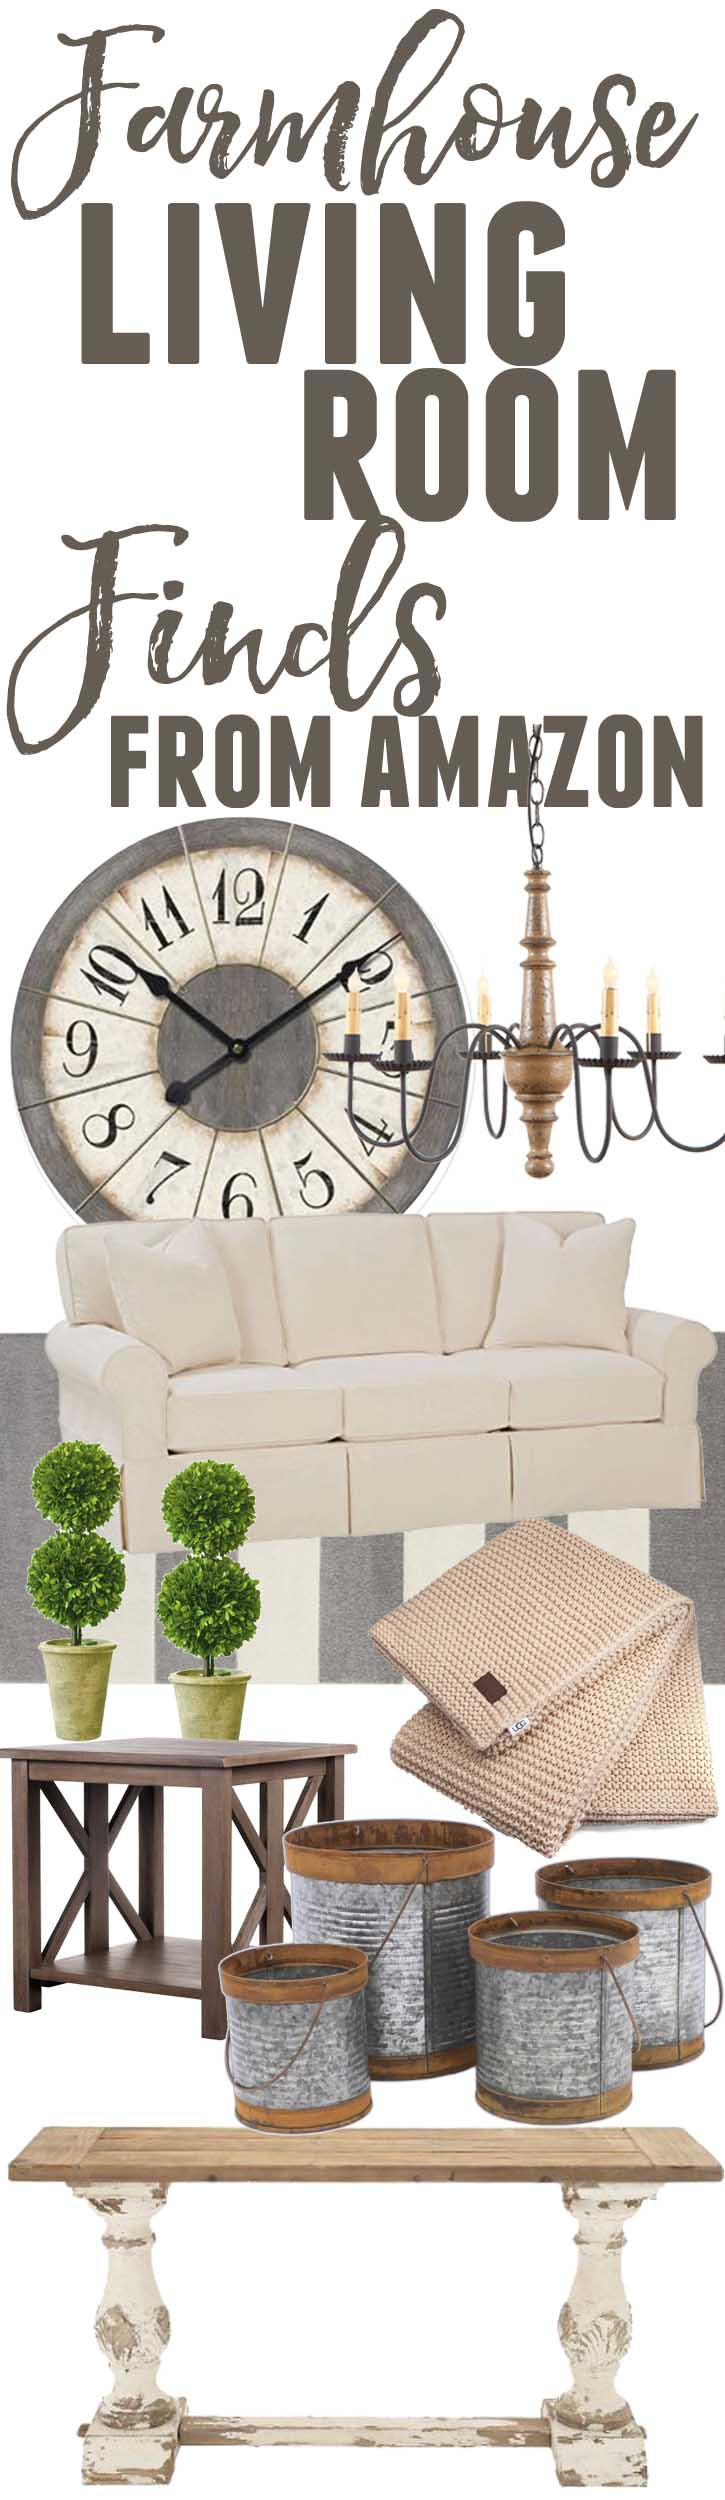 Farmhouse Living Room Finds from Amazon - The Mountain View Cottage